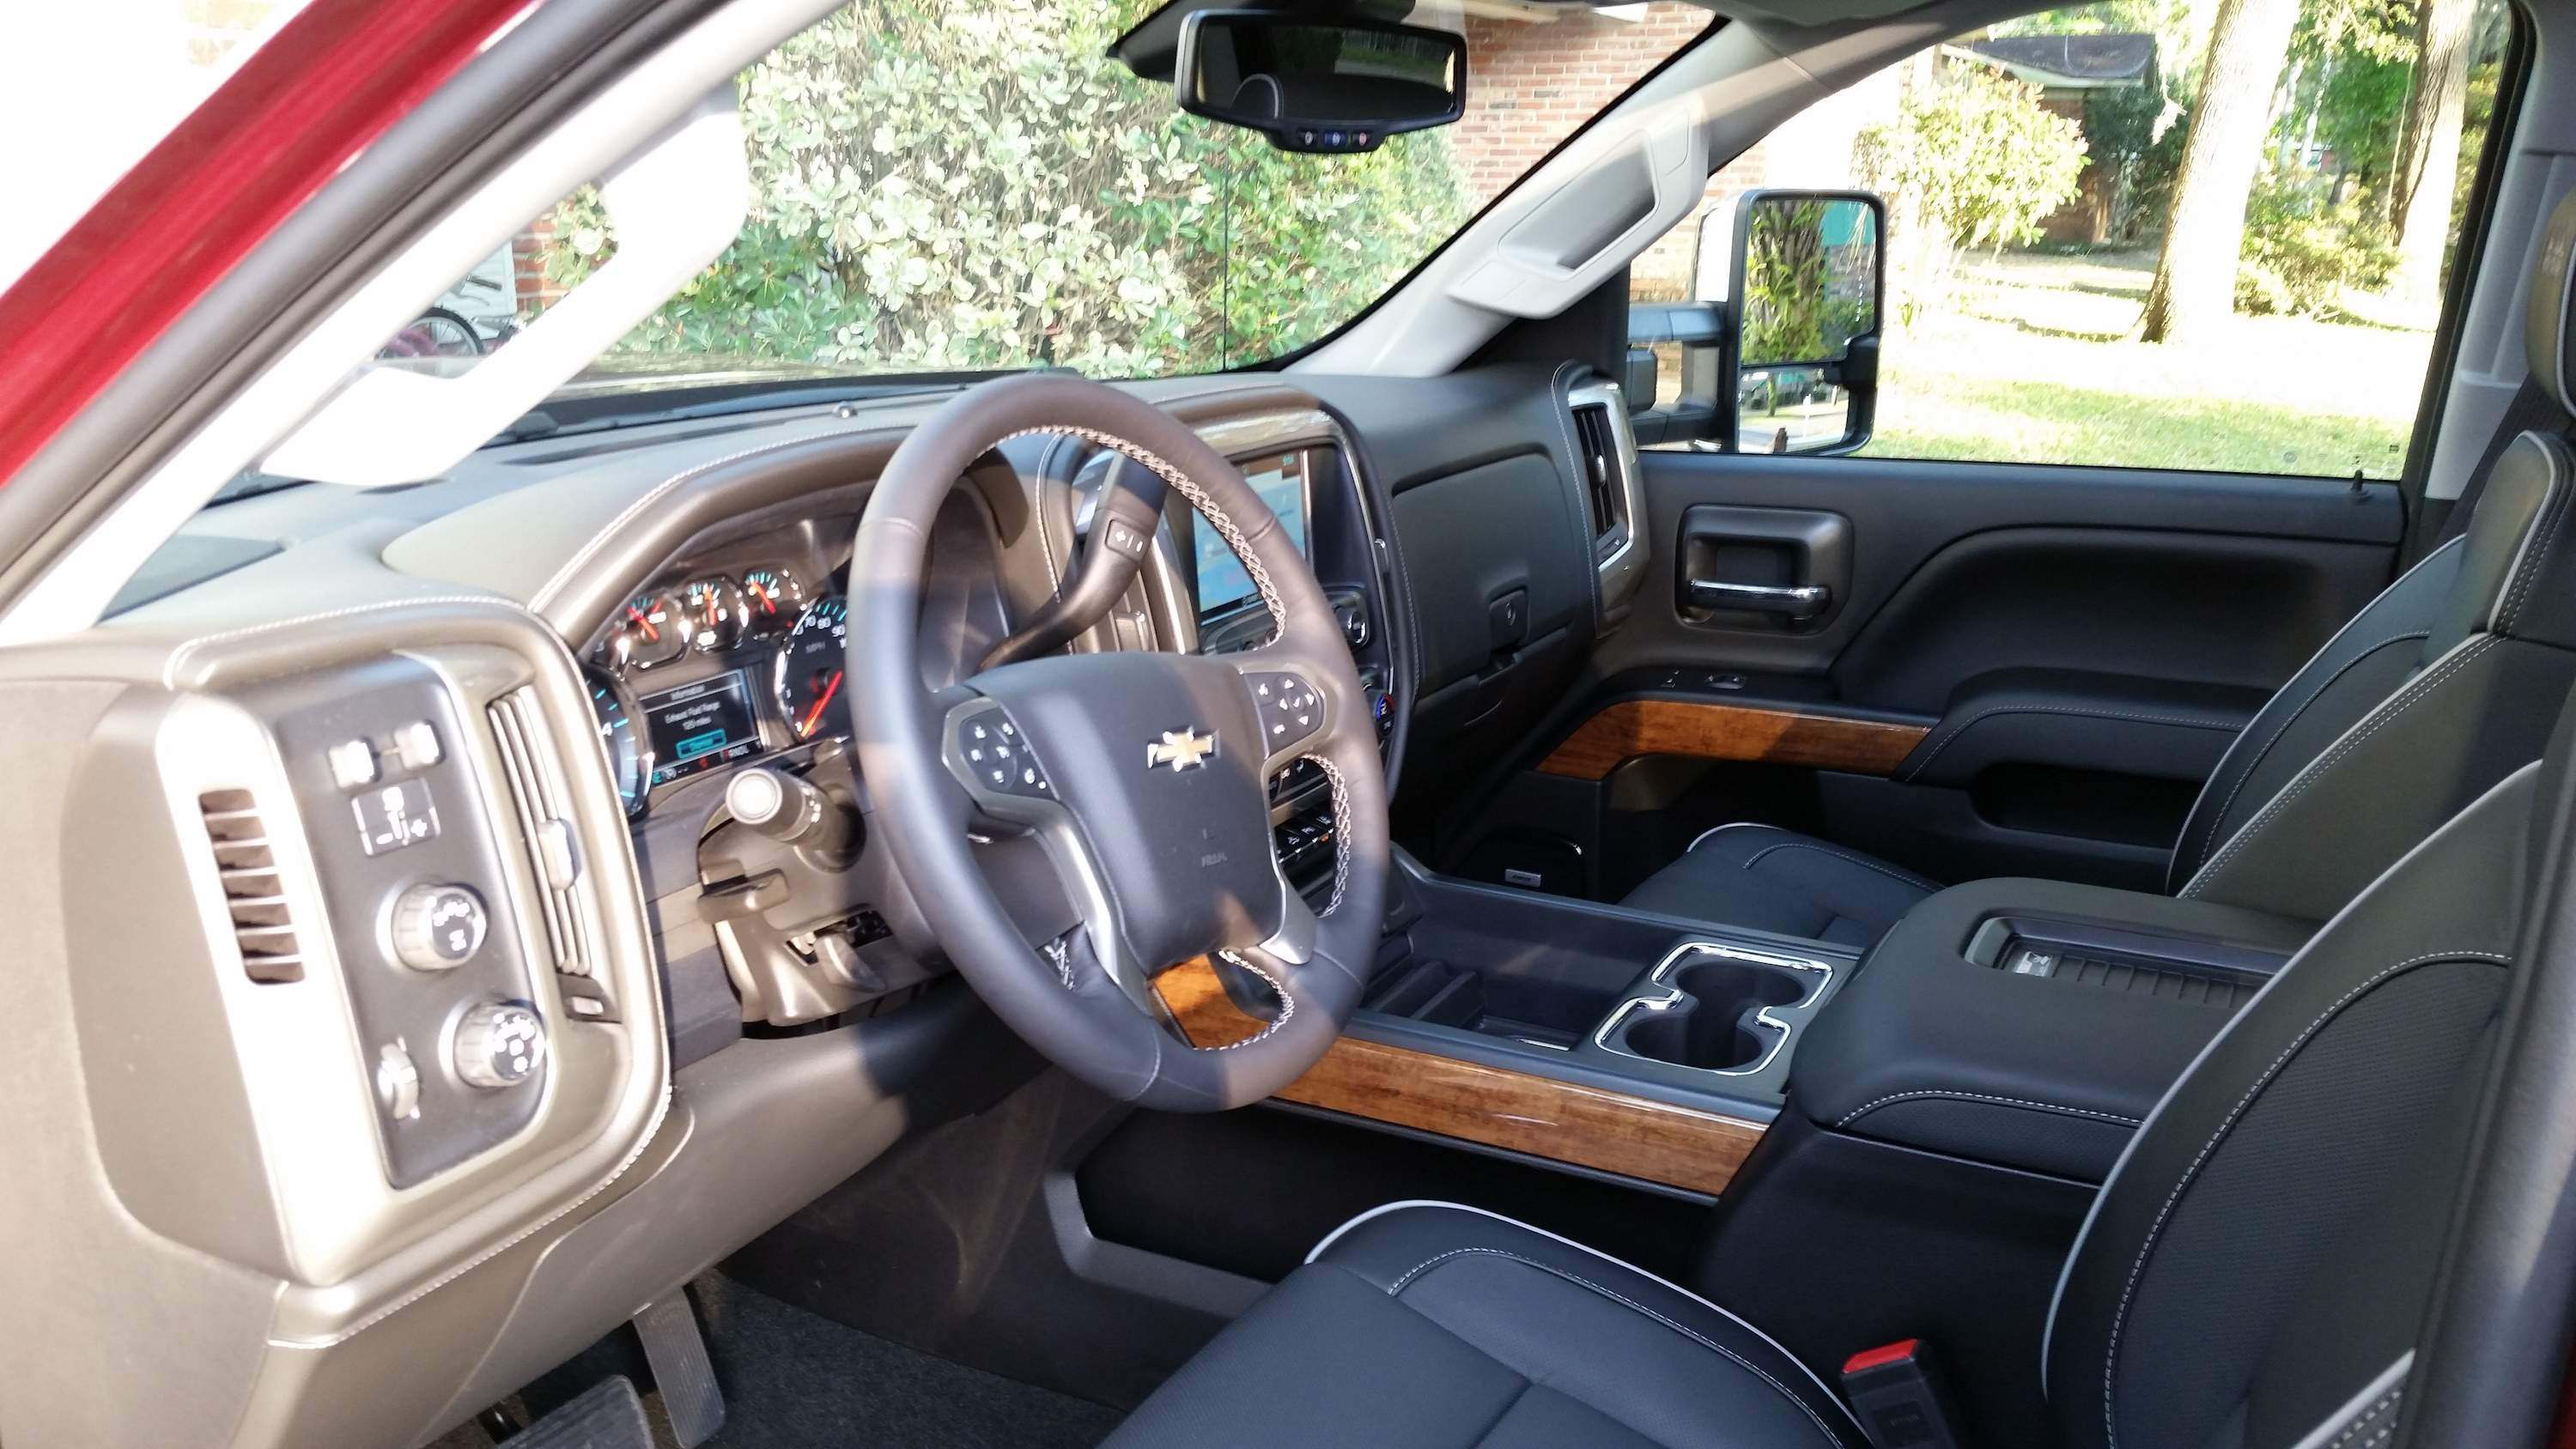 Comfort And Style Comes Together Nicely In The Interior Of The High Country  Silverado. Full Feature Leather Appointed Bucket Seats In The Front Of This  ...